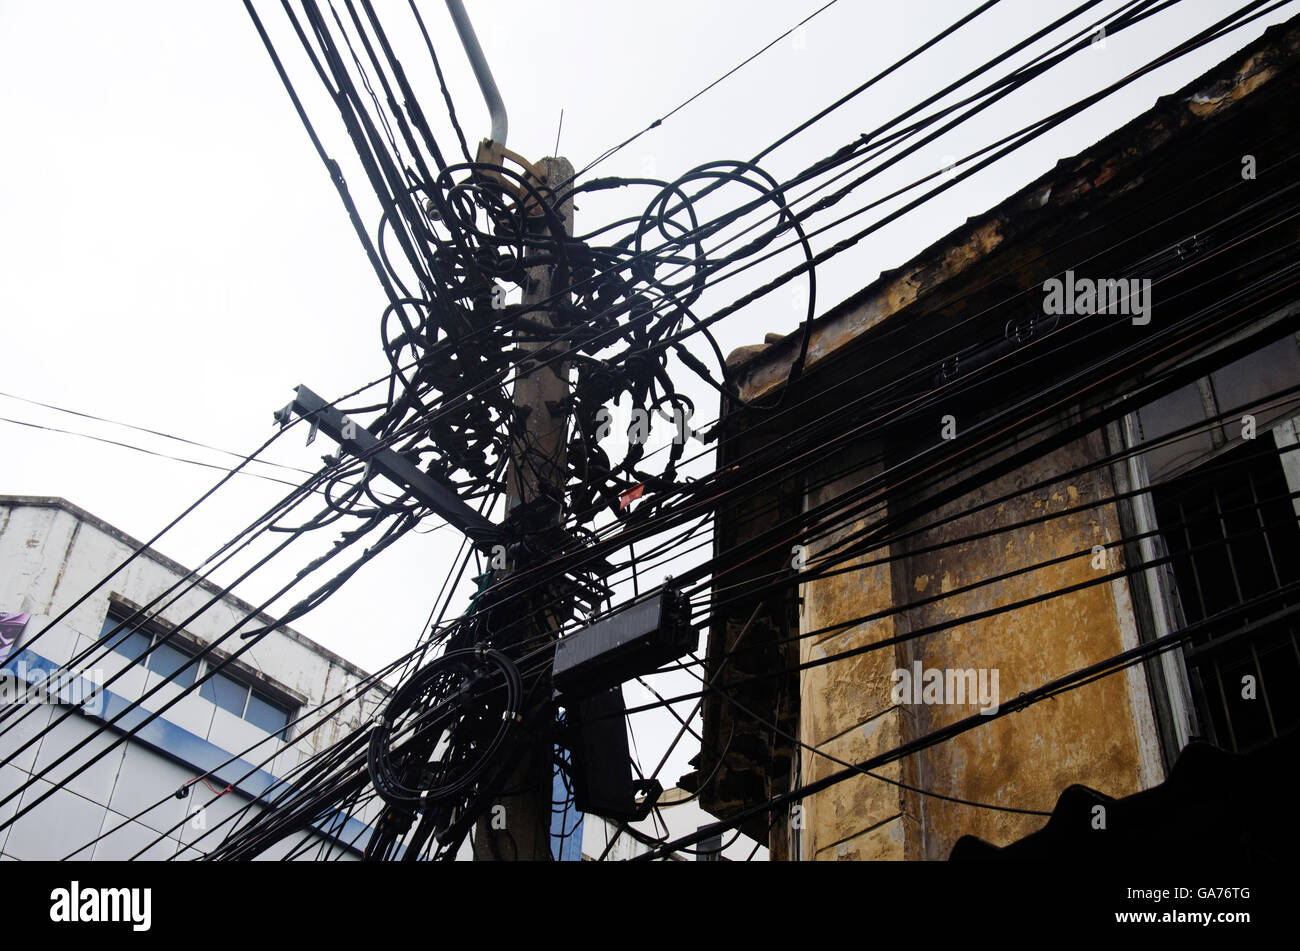 hight resolution of many wires messy with power line cables transformers and phone lines on old electricity pillar